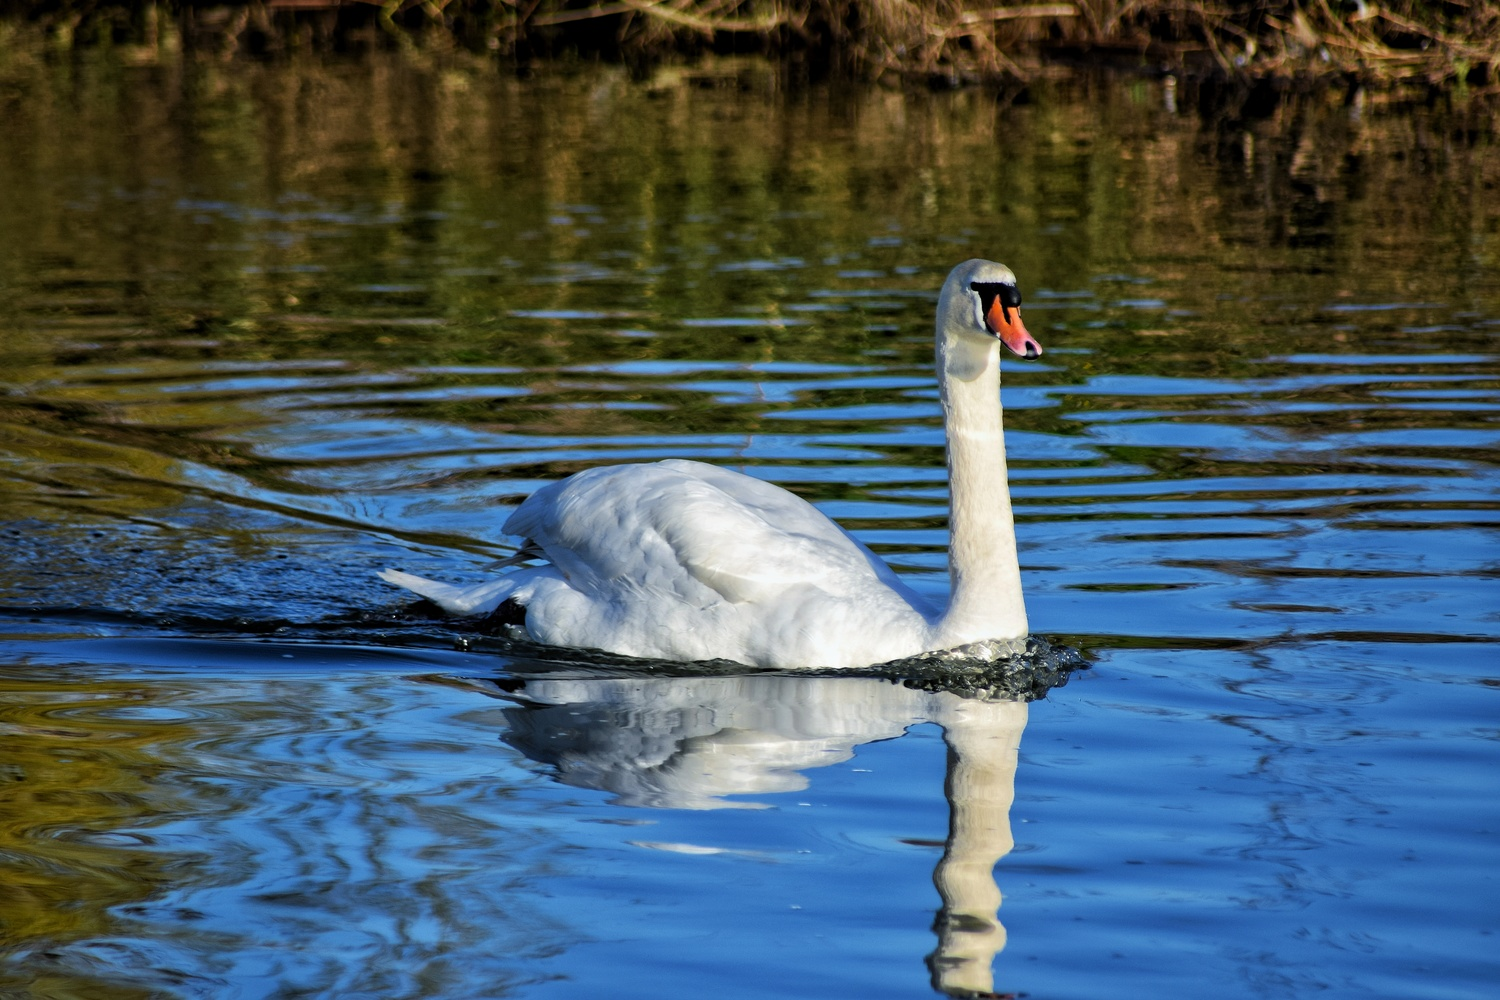 Swan Song by Callum Tiney